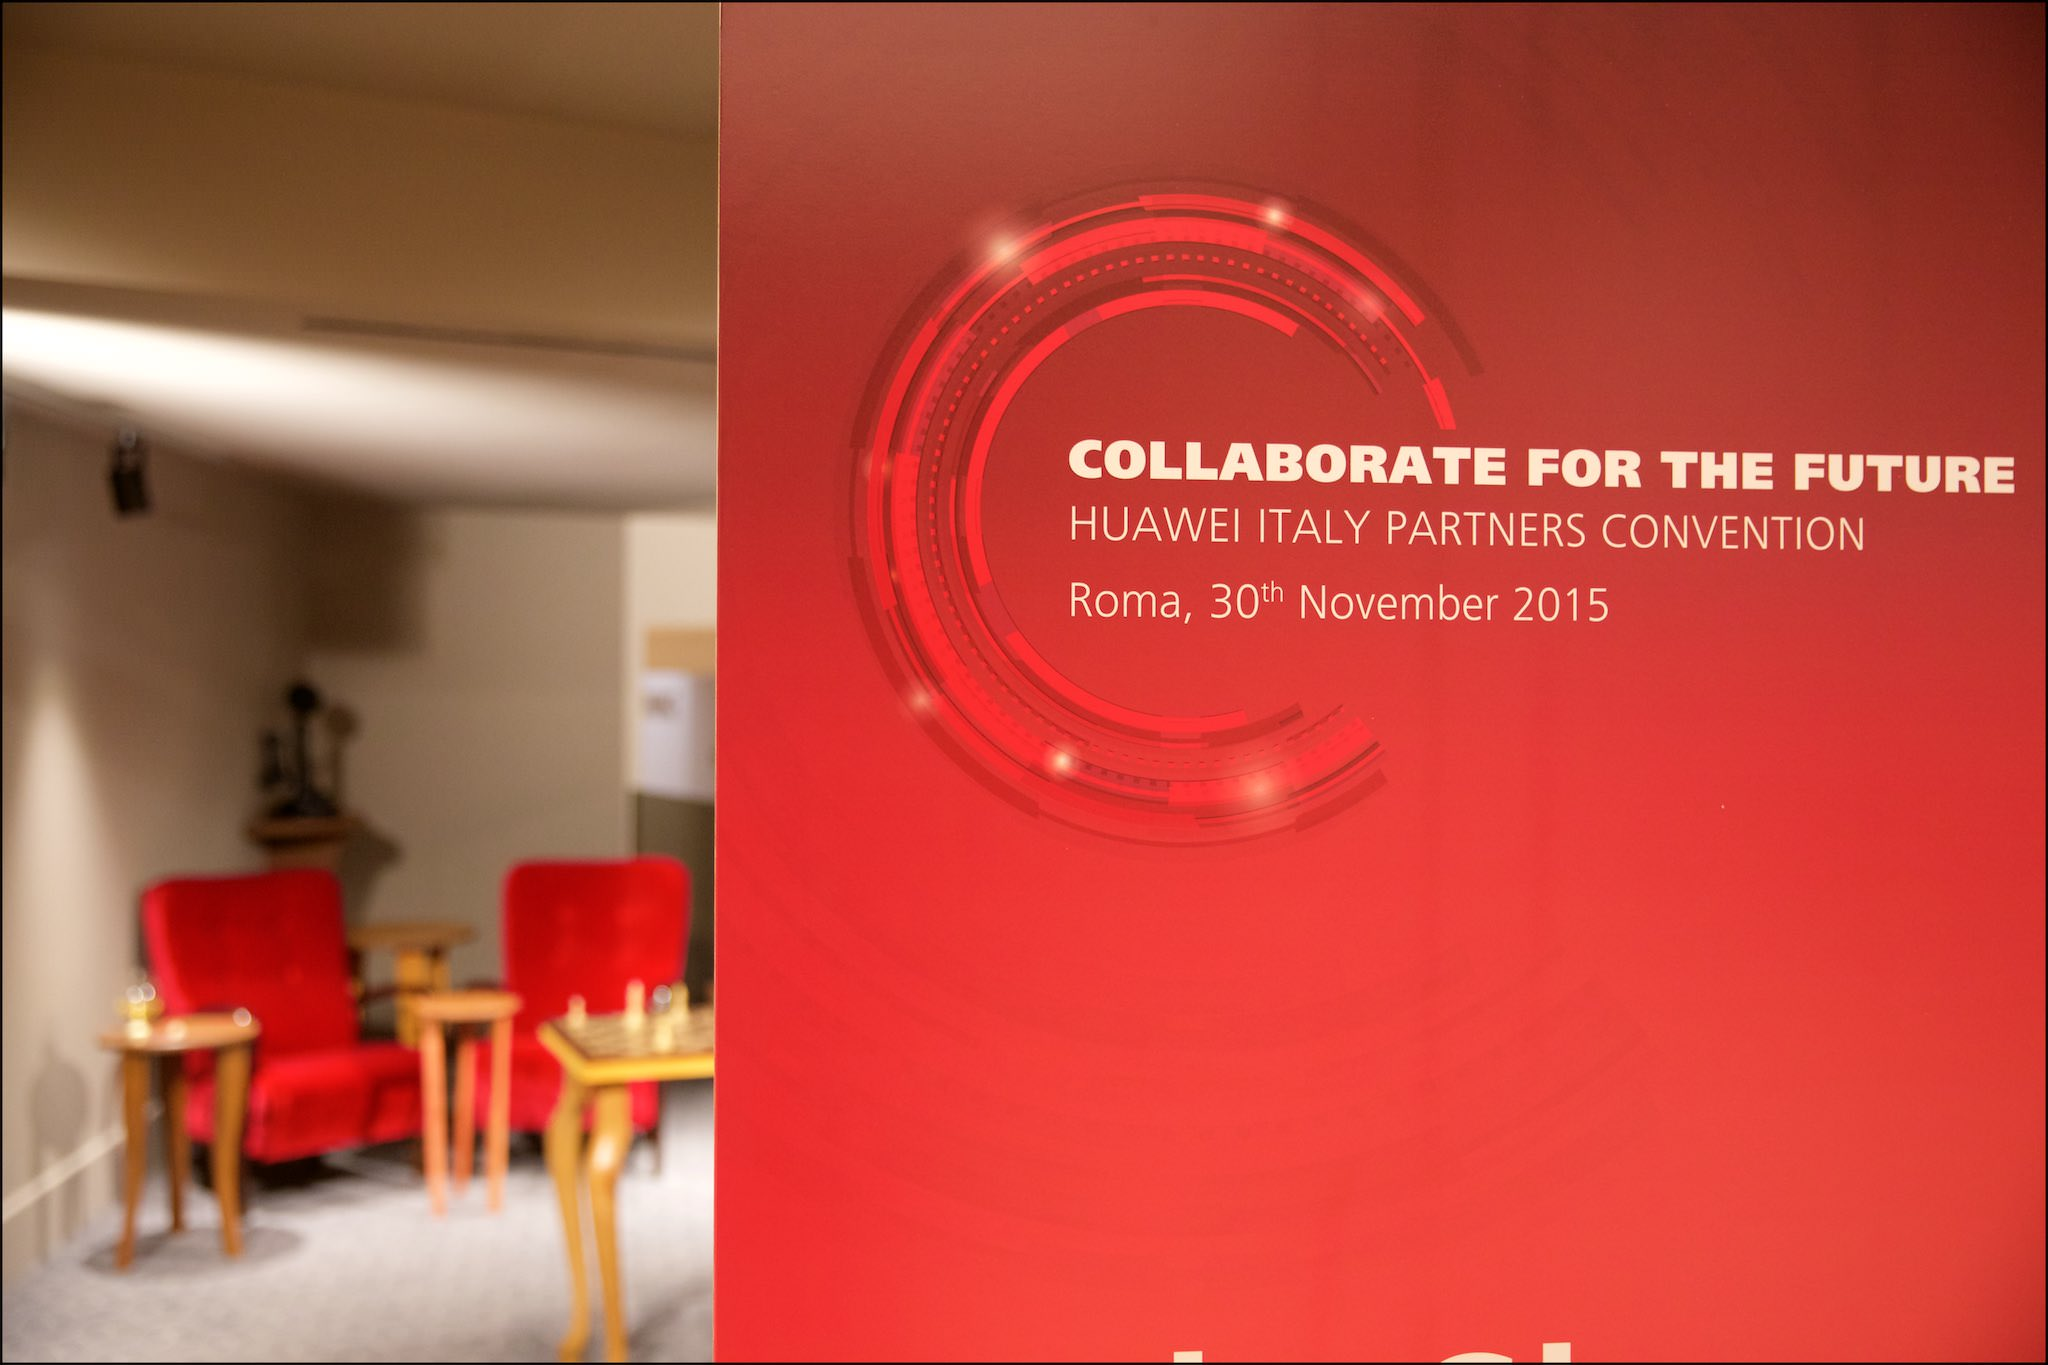 HUAWEI ITALY PARTNER CONVENTION (9)